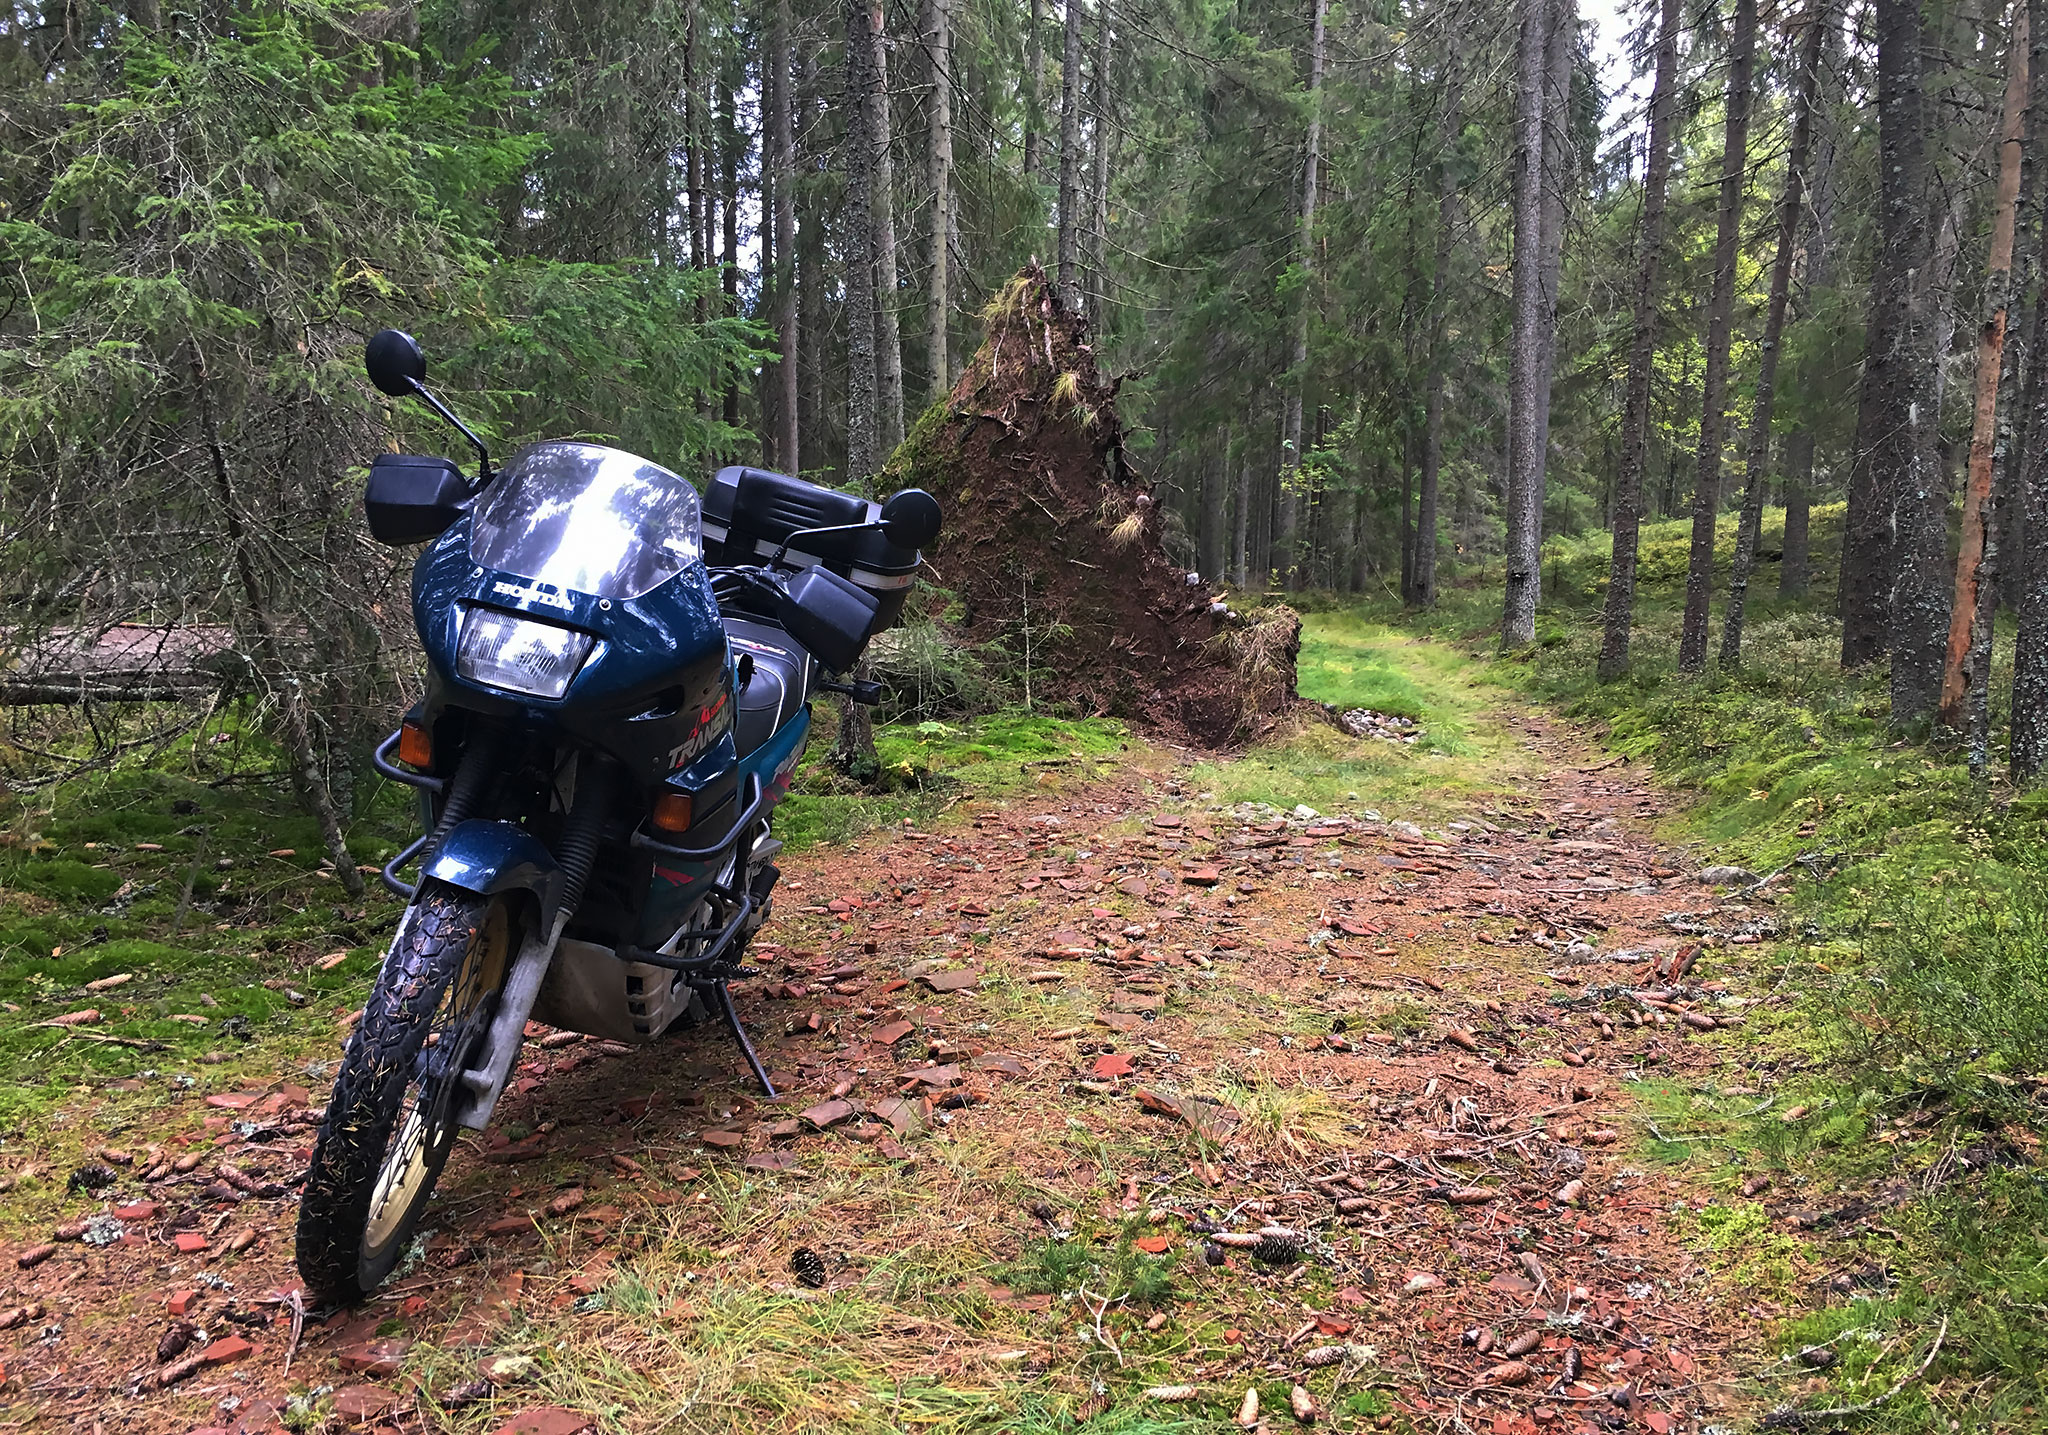 Michelin Sirac on Honda Transalp, September 2018